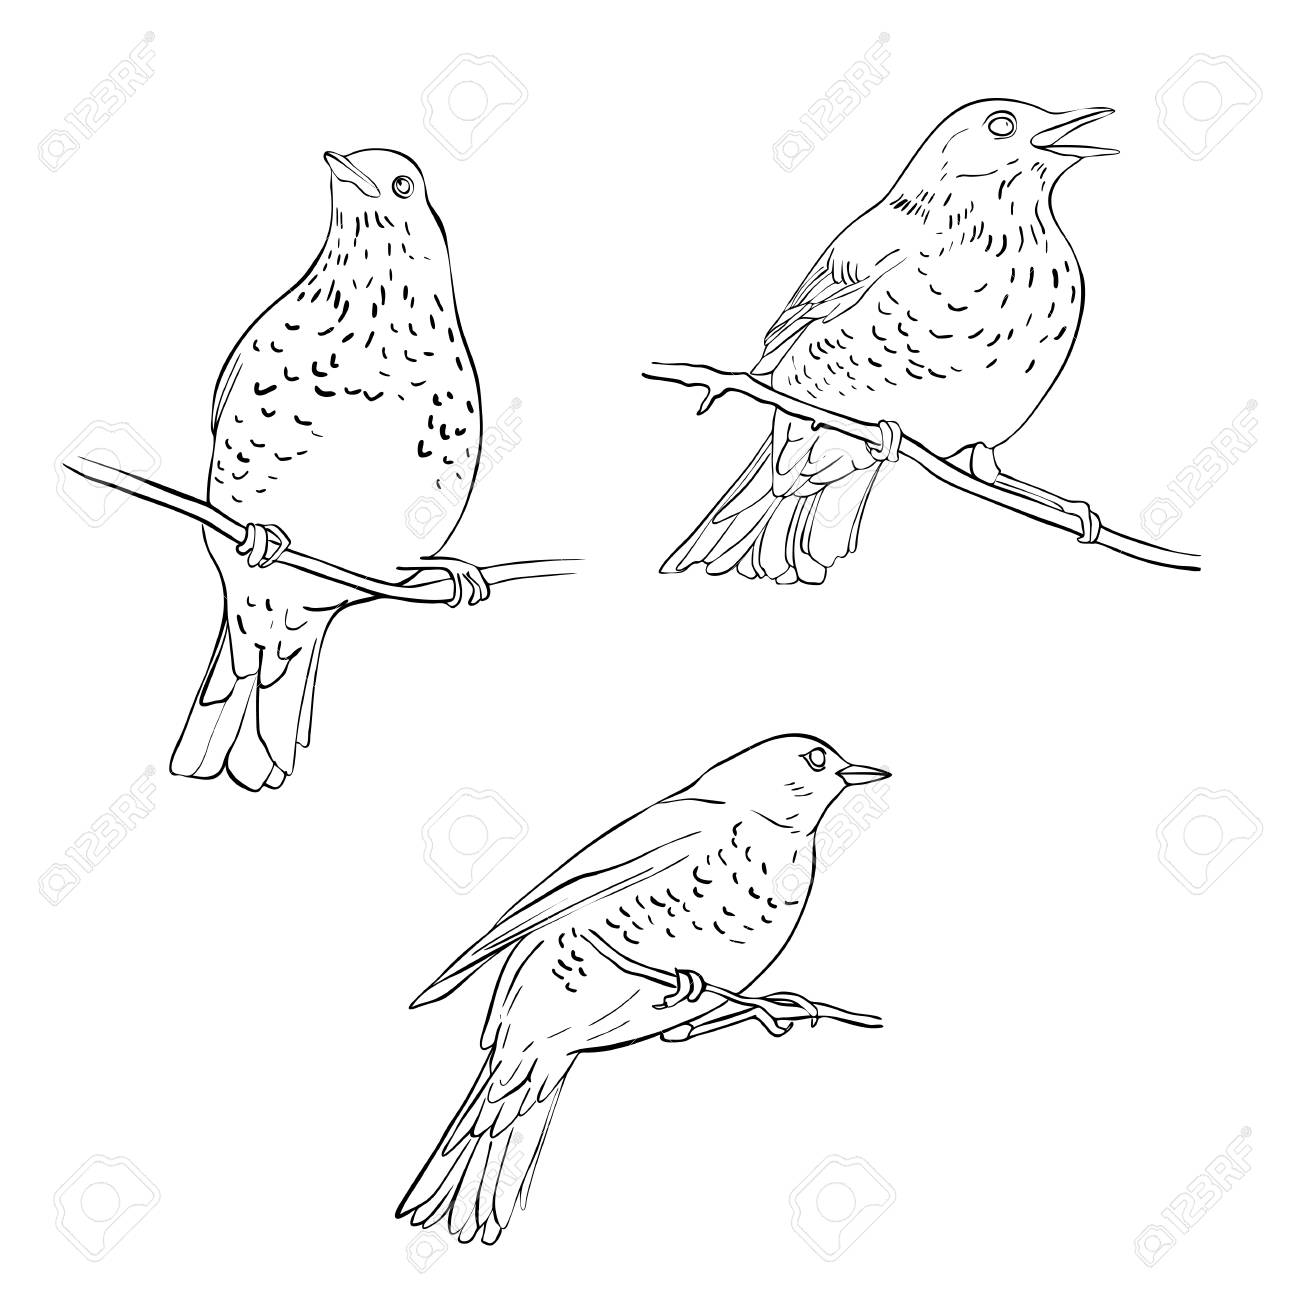 Vector Line Drawing Birds Sitting At Tree Branch Sketch Of Thrush Royalty Free Cliparts Vectors And Stock Illustration Image 118382118